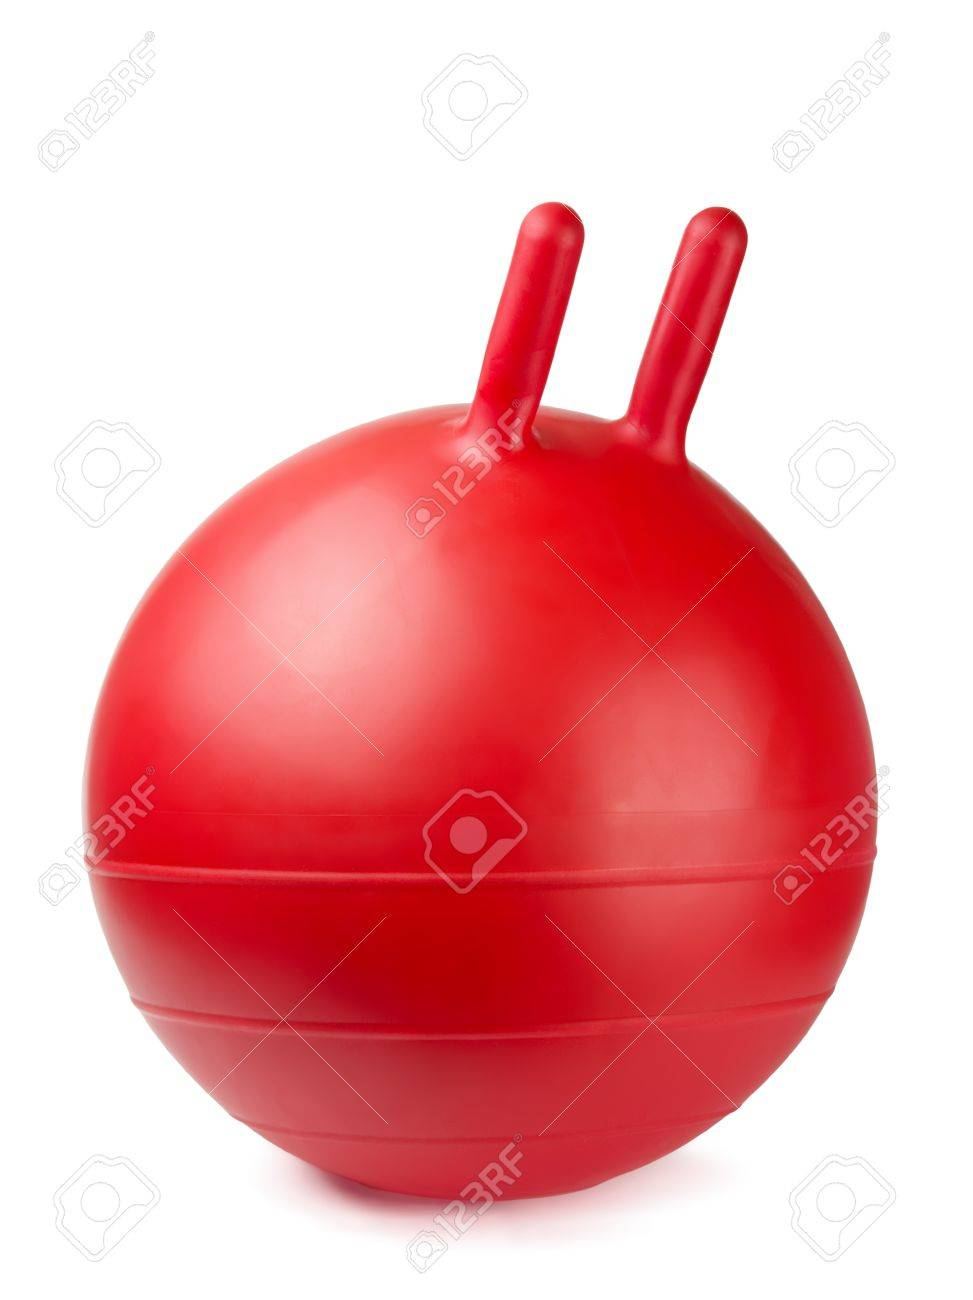 Red Jumping Gym Ball With Handles Isolated On White Stock Photo Picture And Royalty Free Image Image 9215056